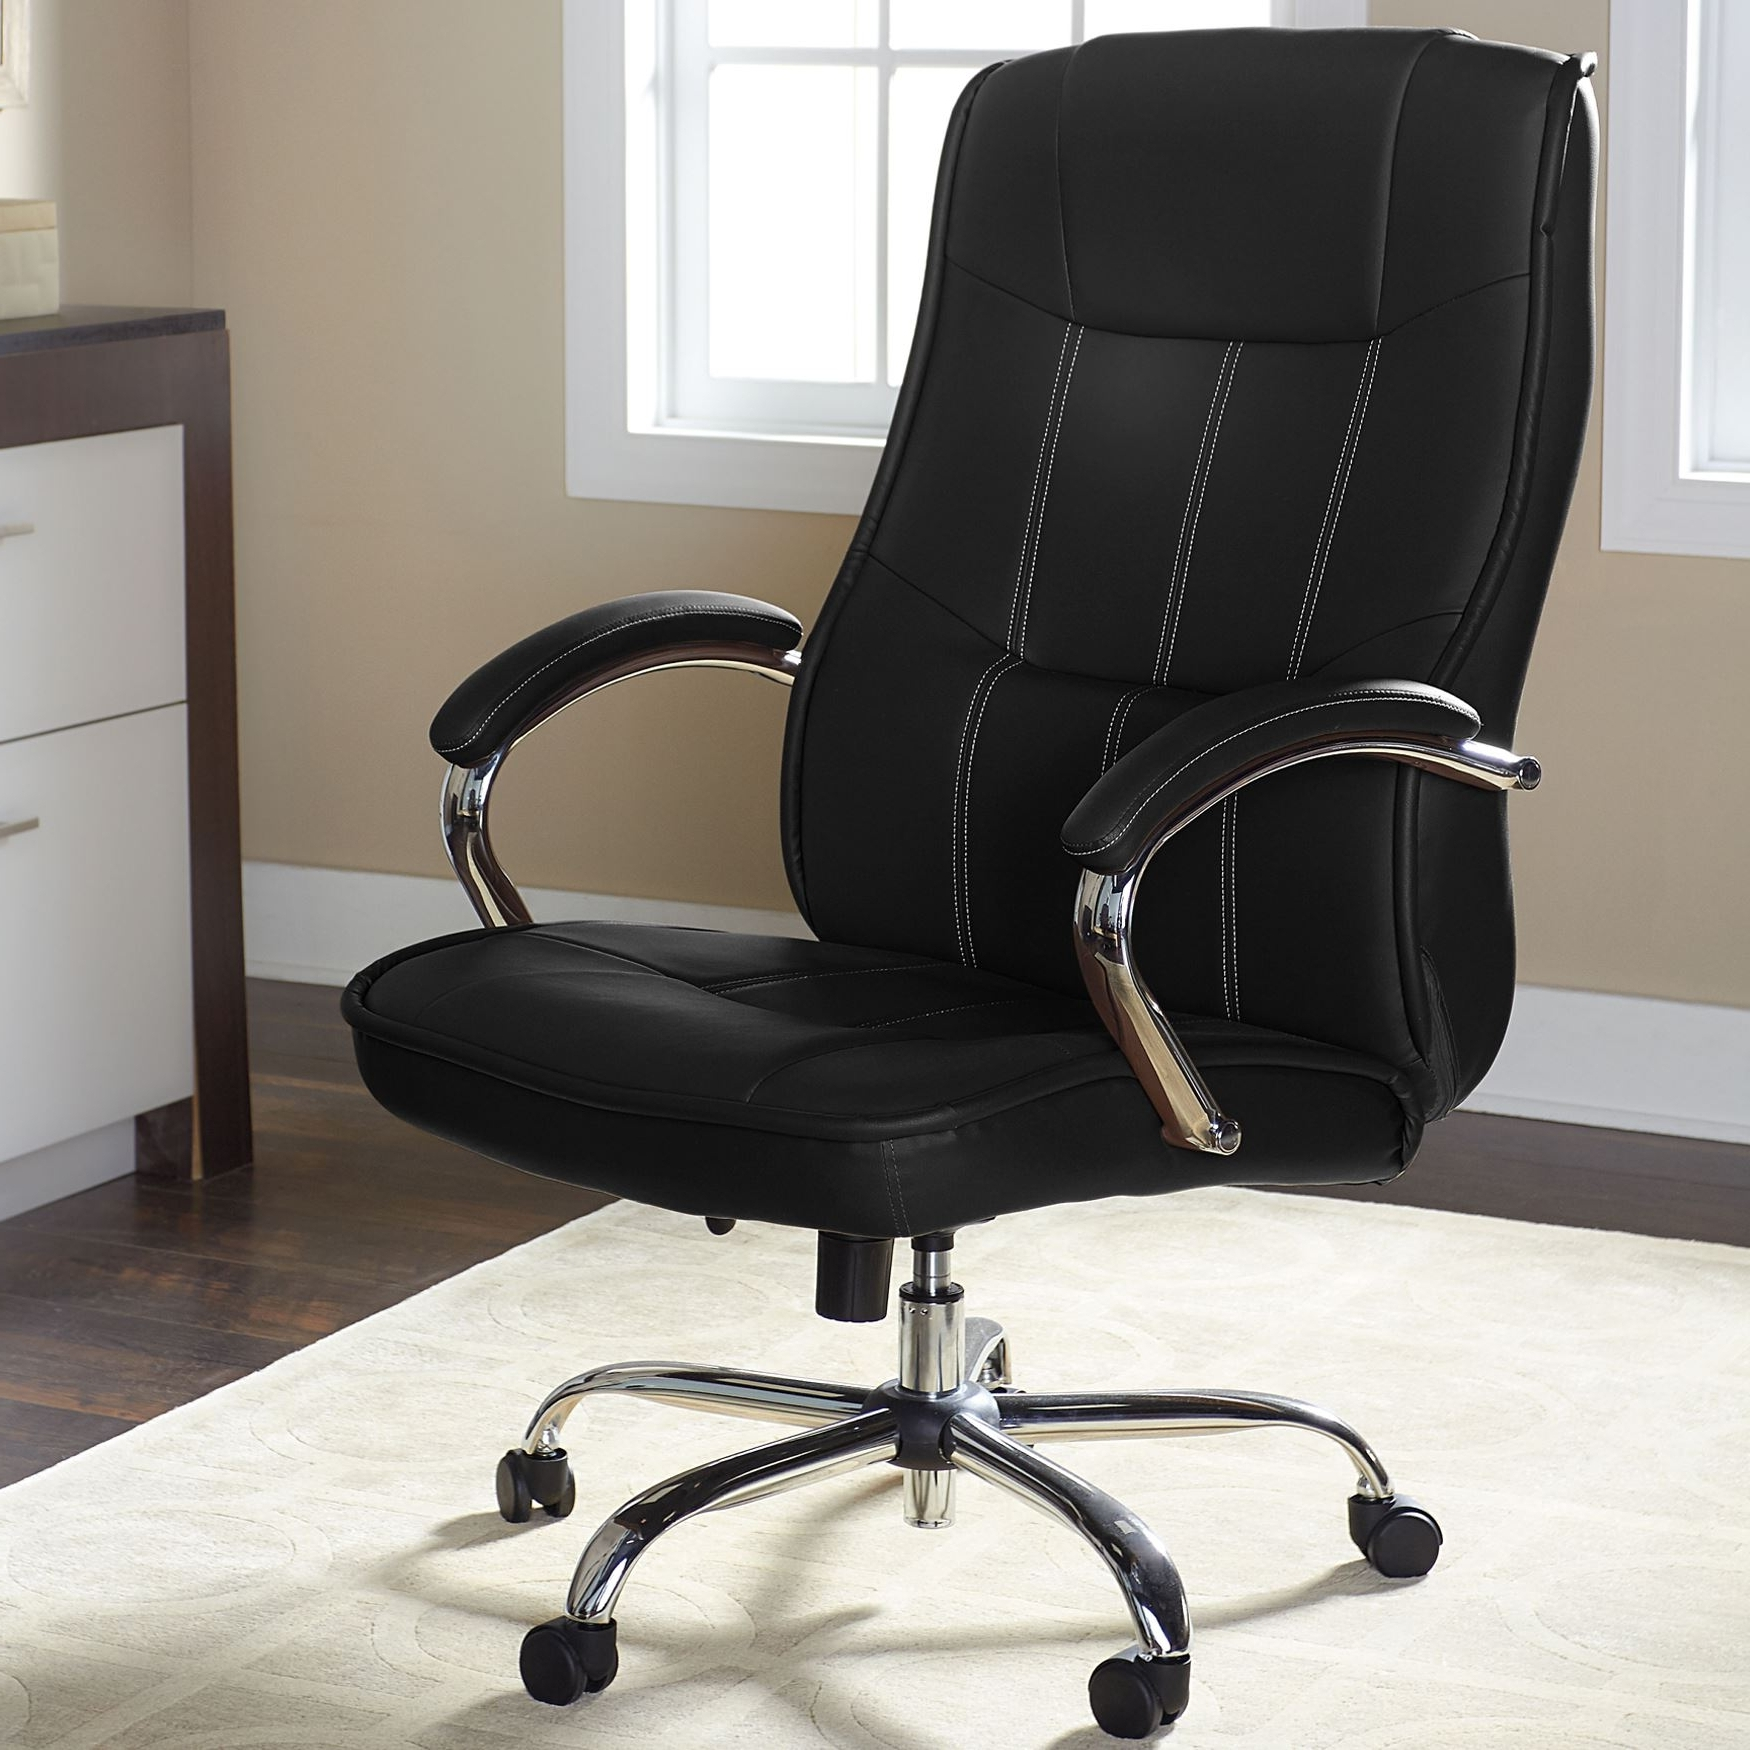 Most Recently Released Executive Office Chairs With Adjustable Arms • Office Chairs For Executive Office Chairs With Adjustable Arms (View 12 of 20)